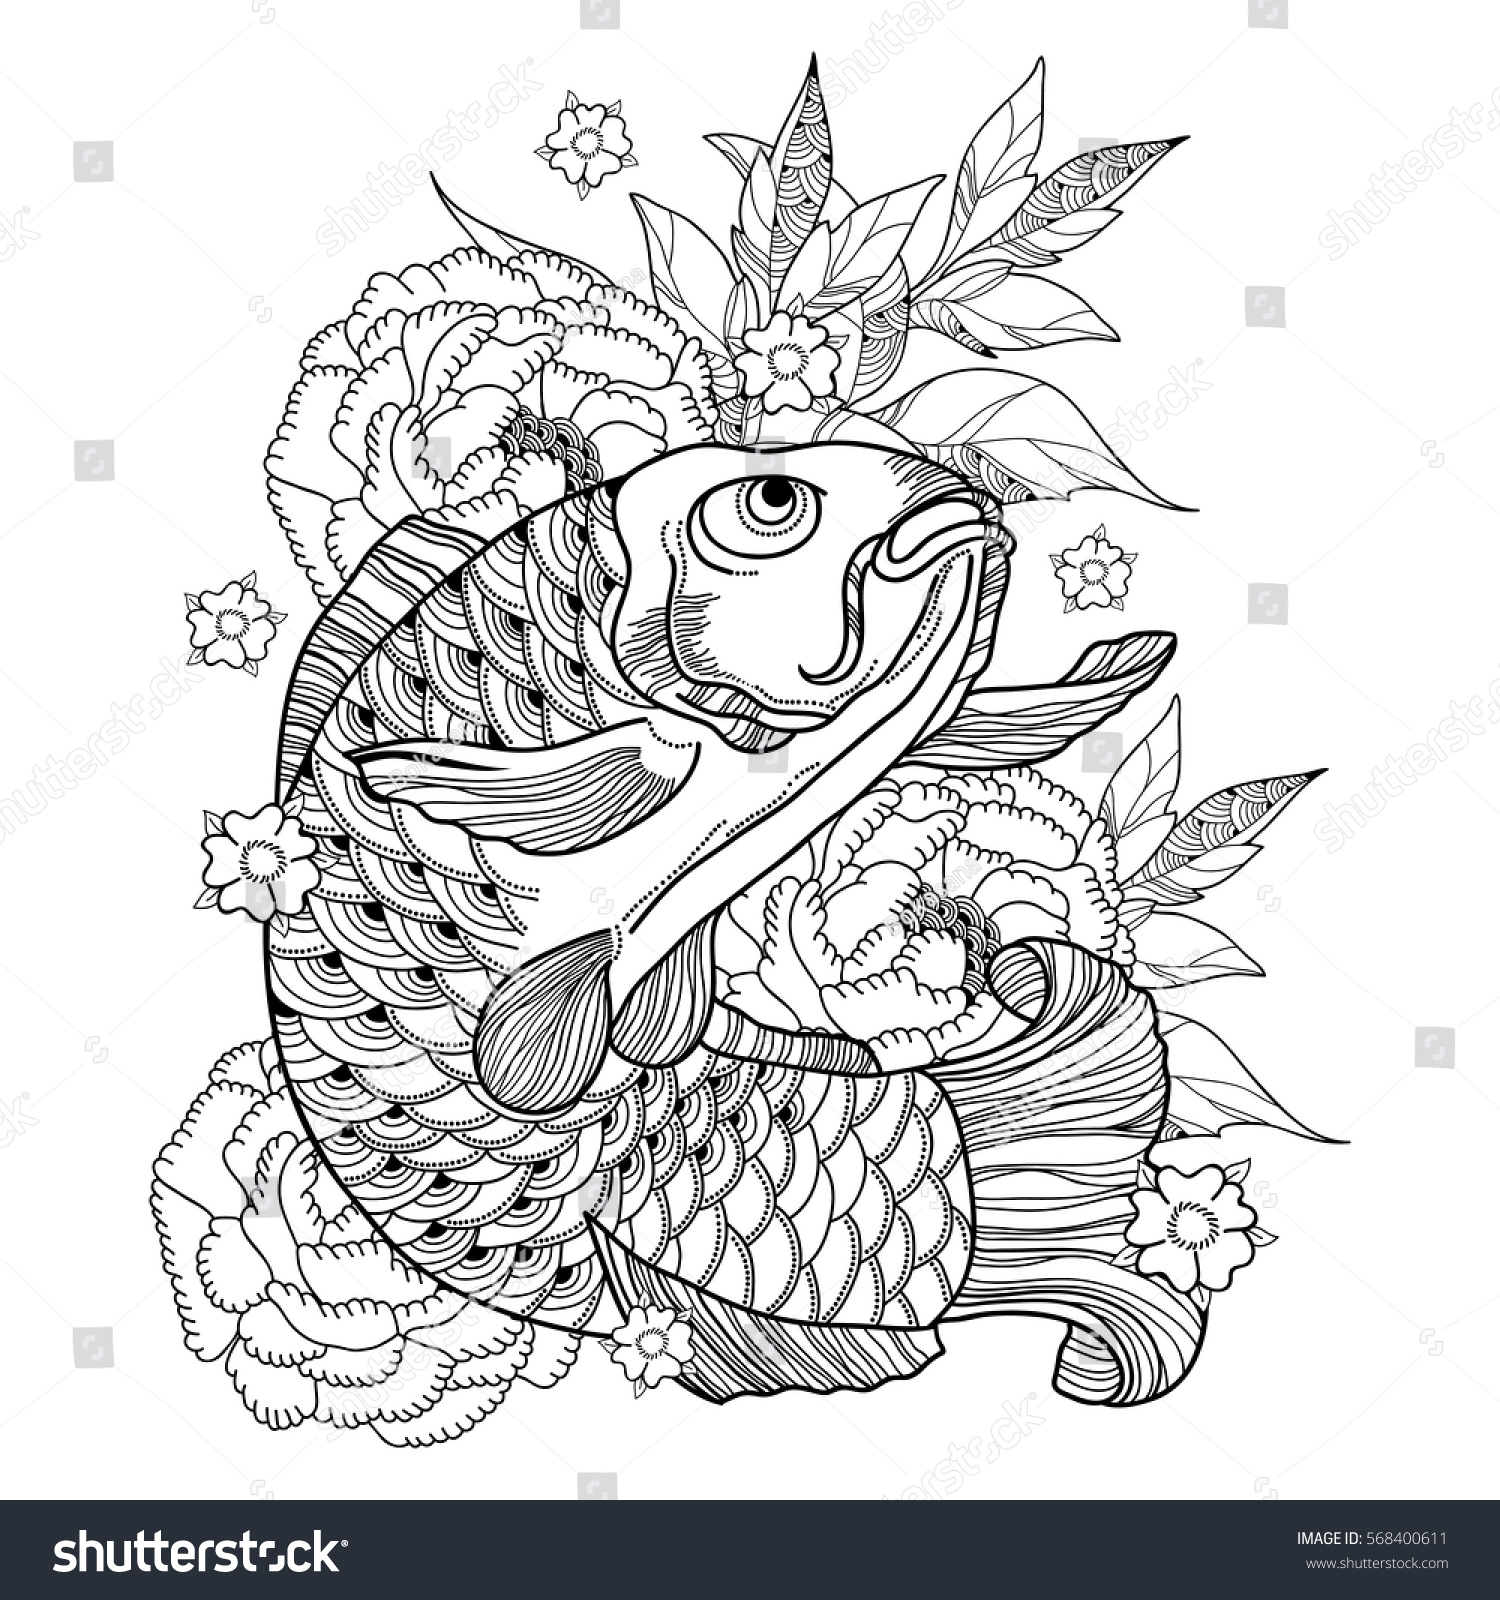 vector illustration with hand drawn outline koi carp and chrysanthemum or dahlia in black isolated on